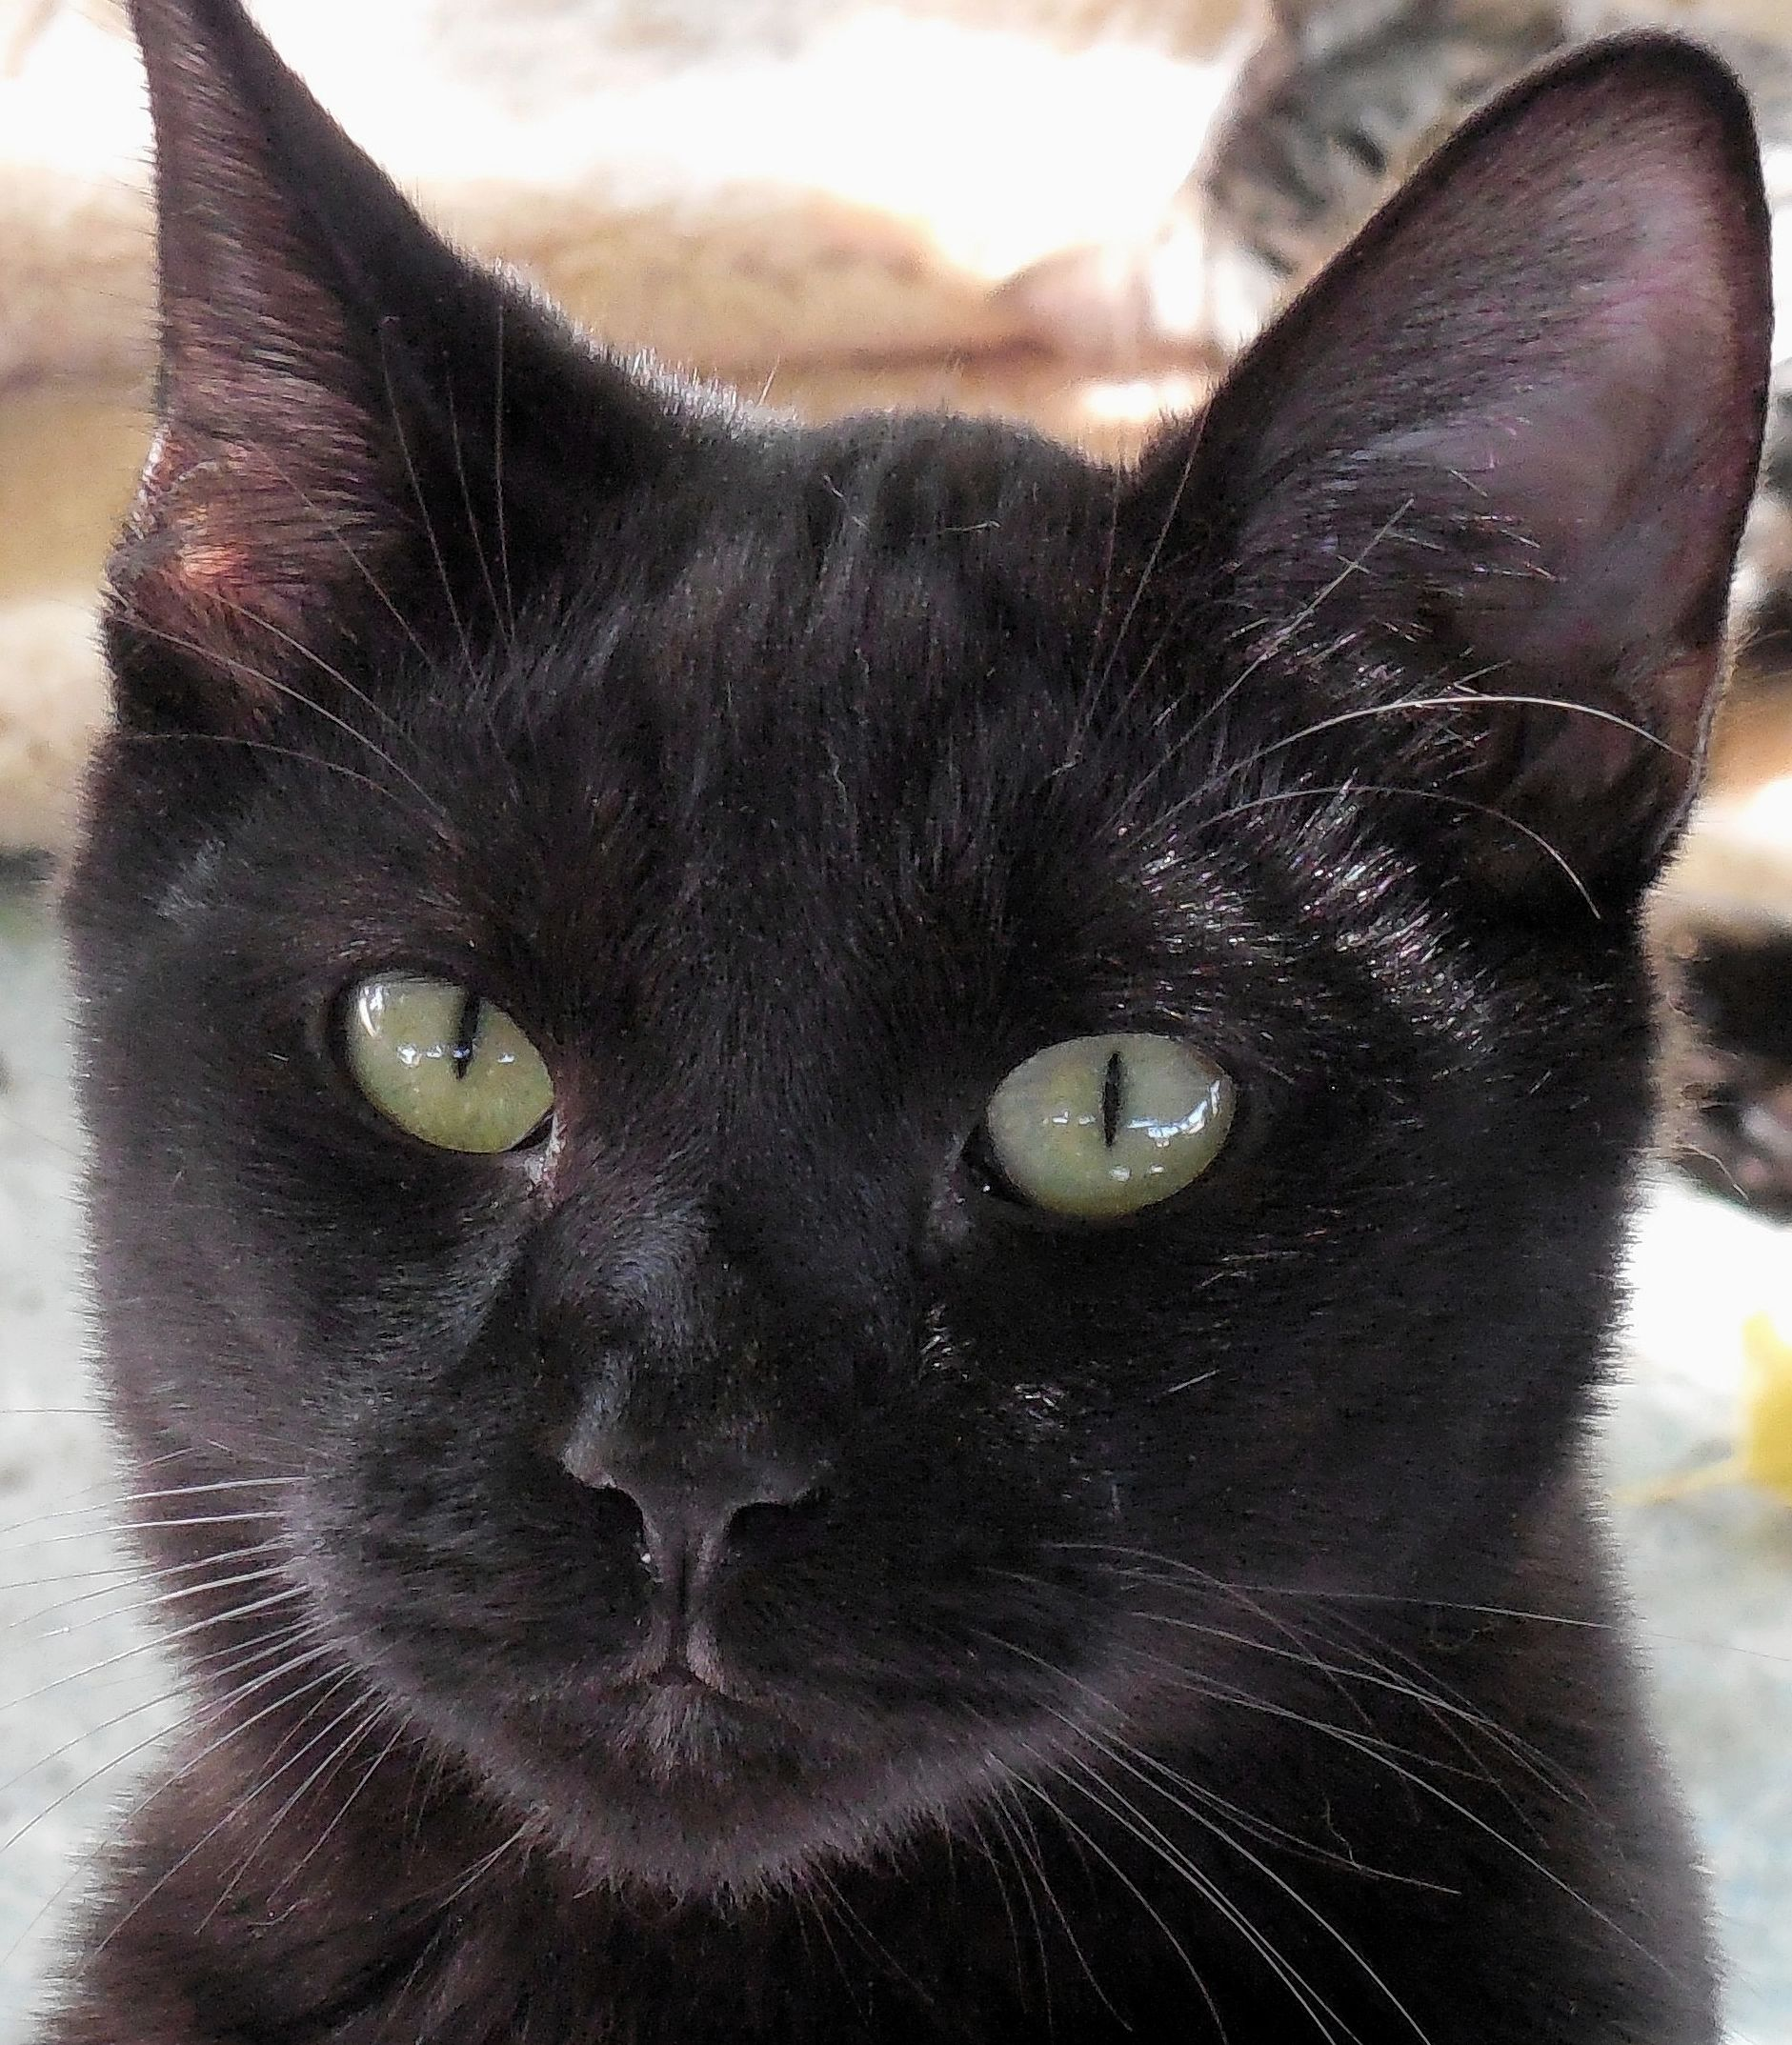 Maverick is a 10-month-old male who is friendly to humans and cats. He is very social. Maverick is neutered, vaccinated, suited for most families and his adoption fee is $60. Apply with Another Chance Animal Welfare League Adoption Center at www.acawl.org. Call 229-7833. Go to www.redding.com for more adoptable pets.